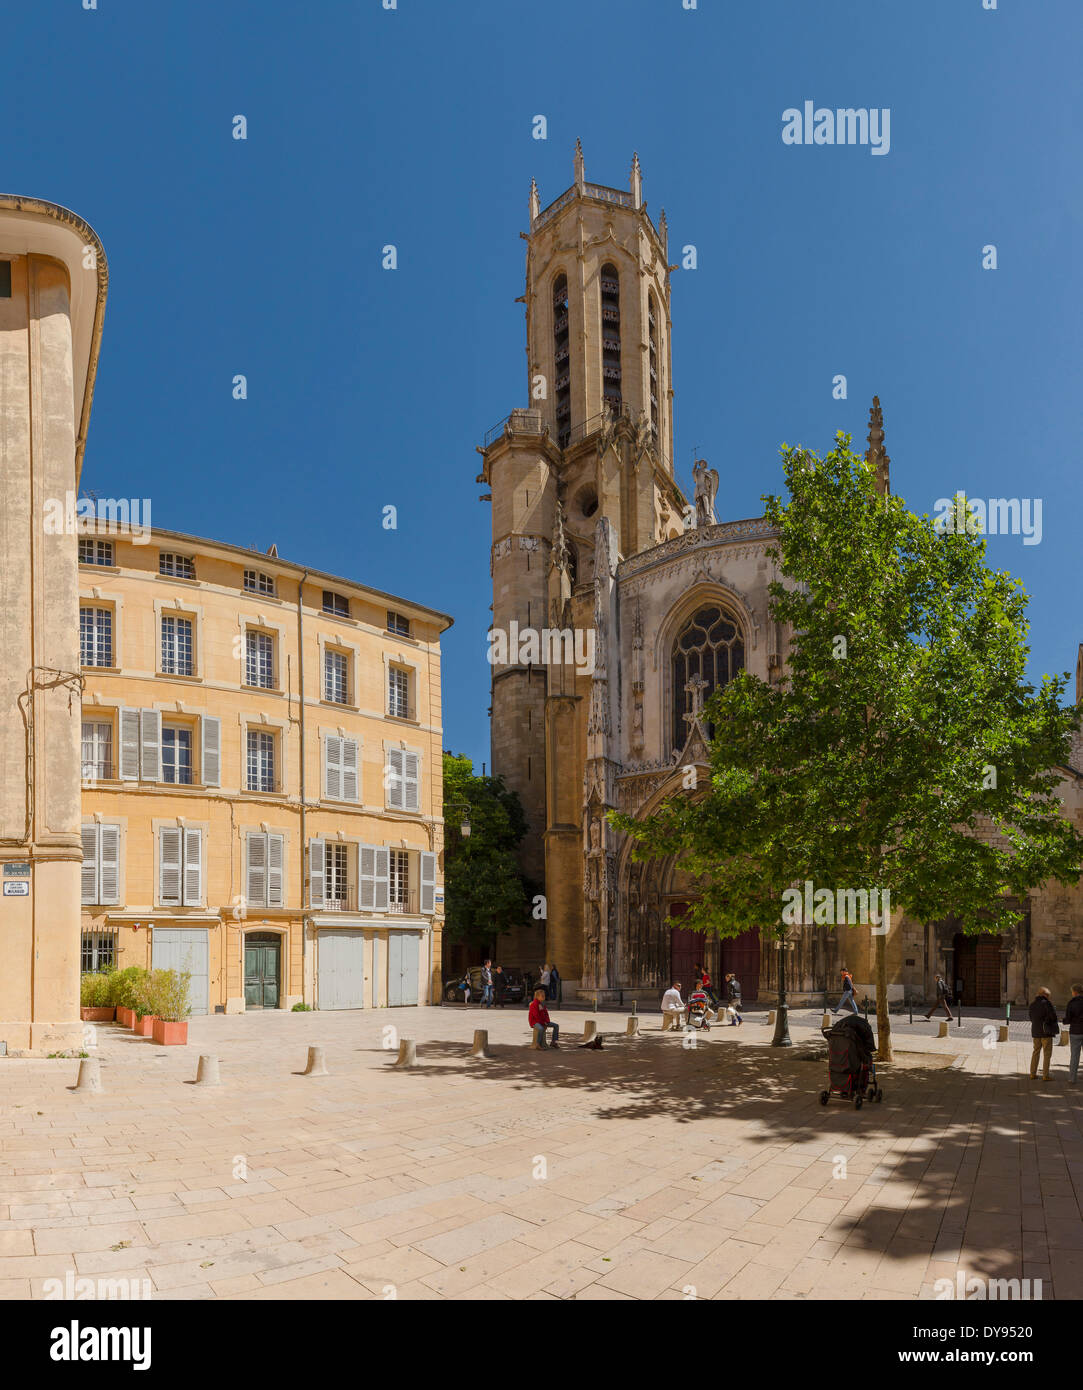 Cathedrale Sa cathedral Sa church monastery forest wood trees spring people Aix en Provence Bouches du Rhone France Europe, - Stock Image